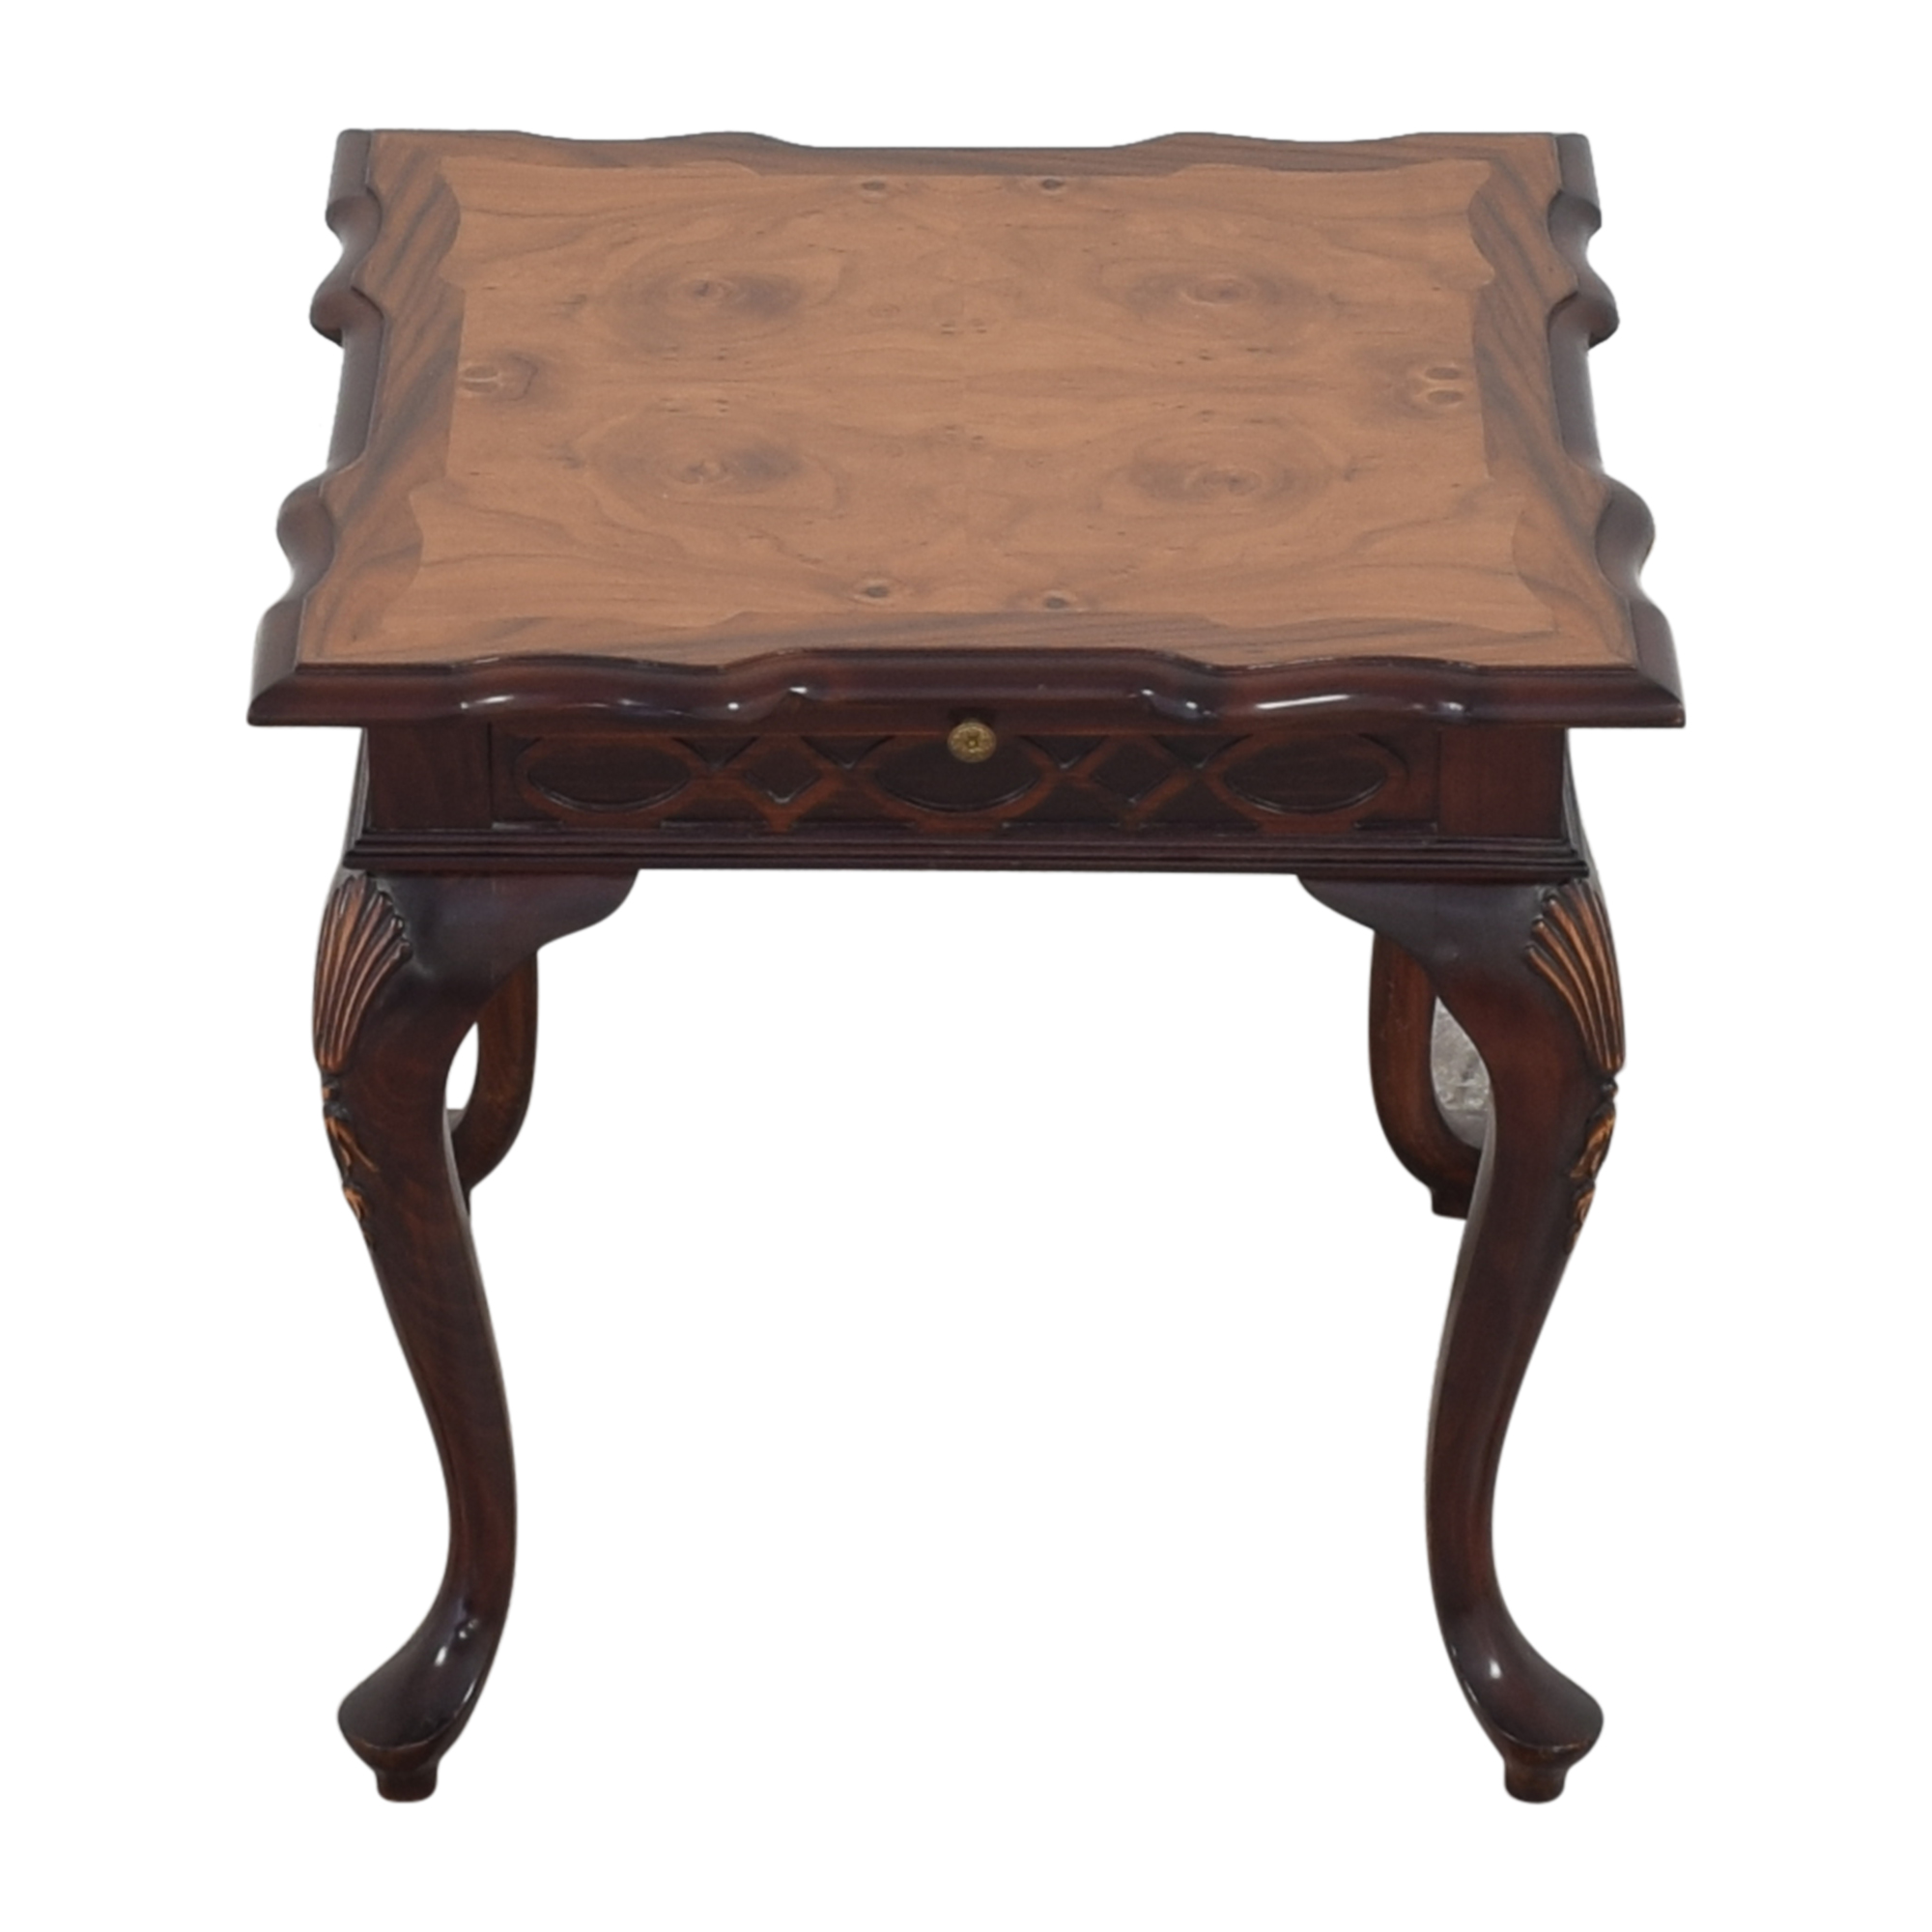 Carved End Table with Desk Extension Tables